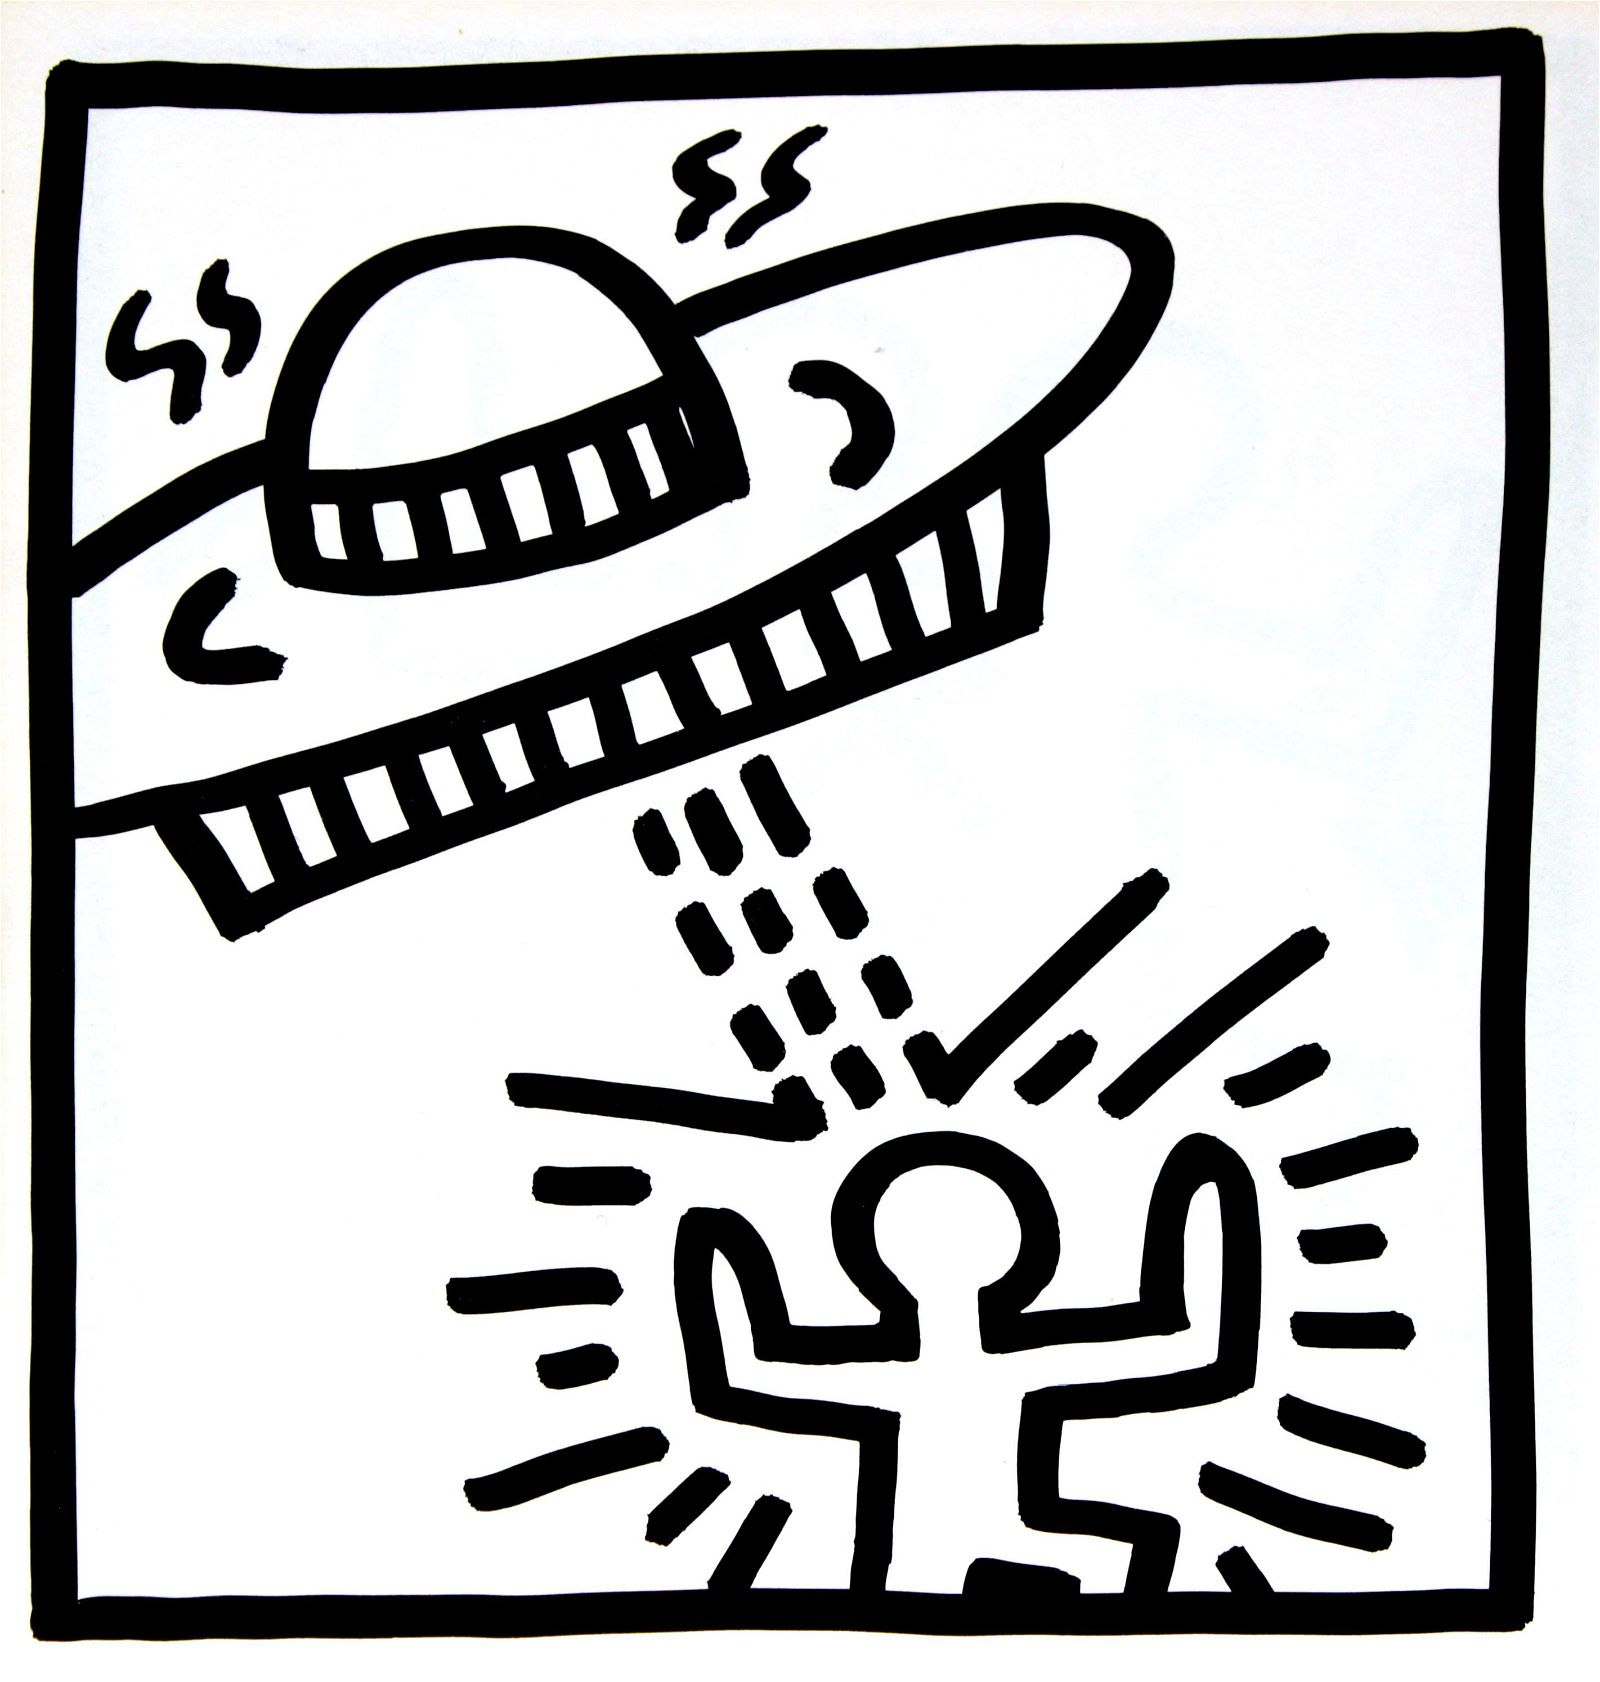 Keith Haring - Untitled (Alien Abduction II)